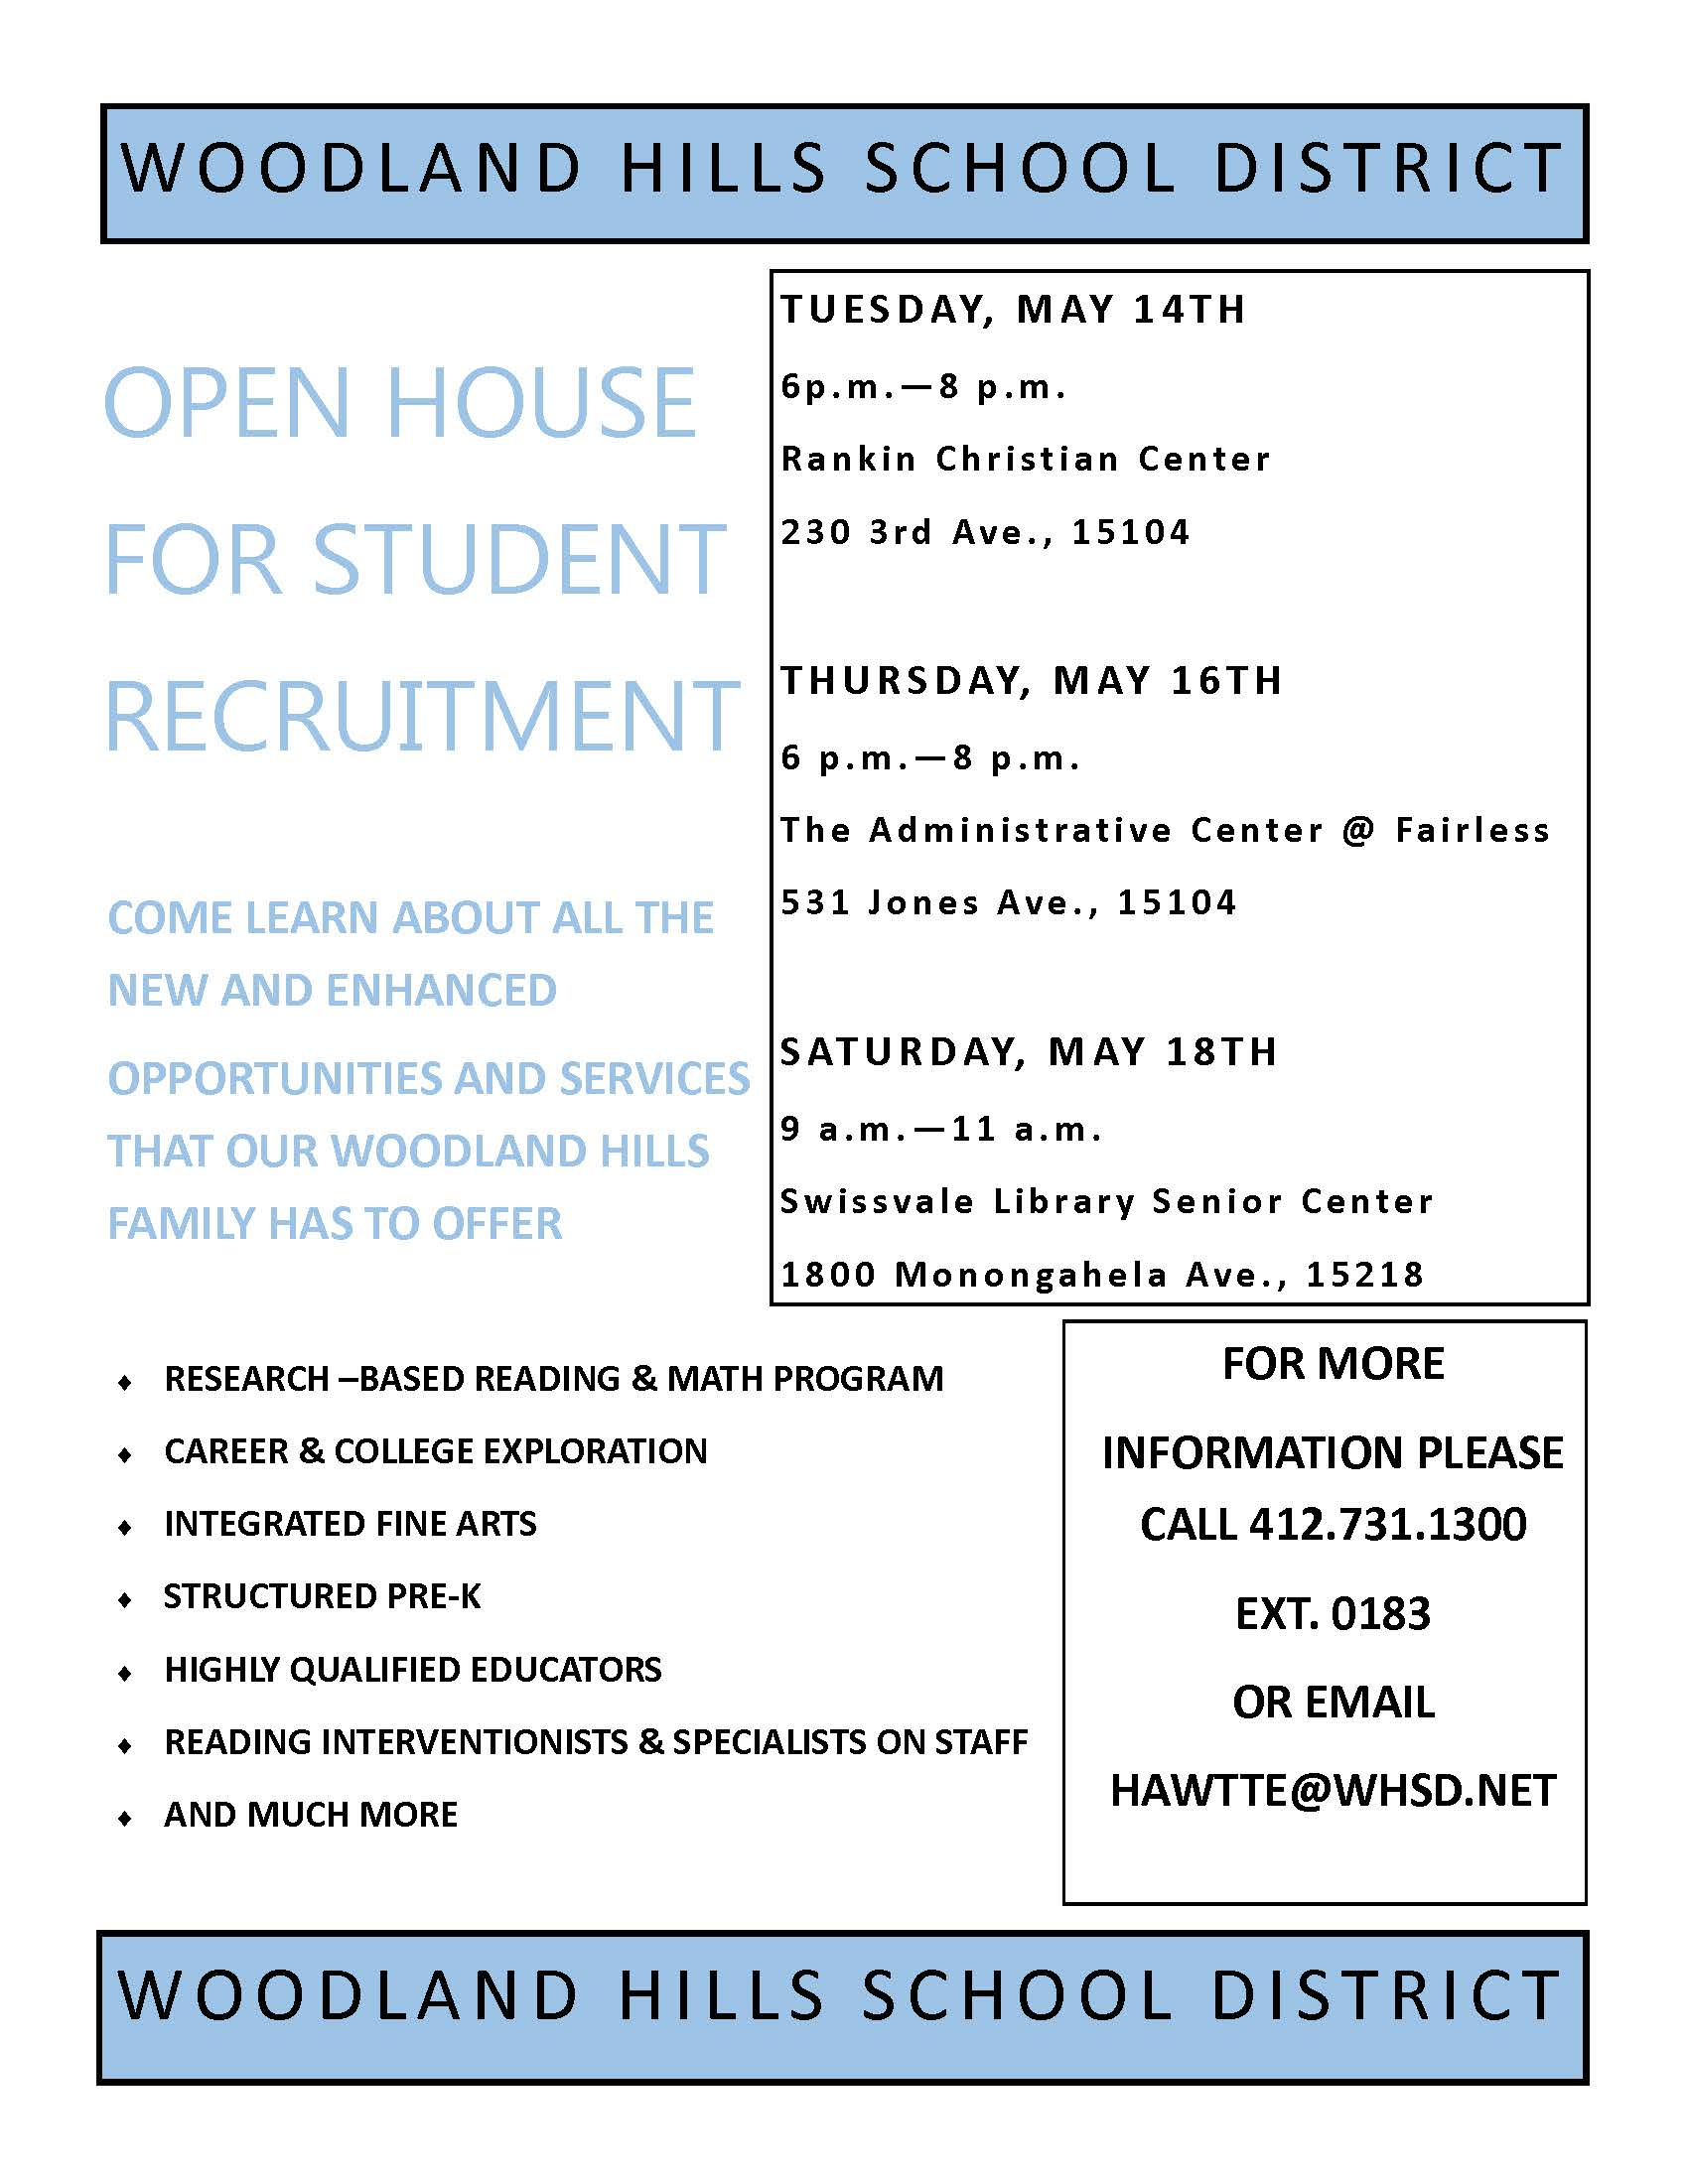 OPEN HOUSE FOR STUDENT RECRUITMENT